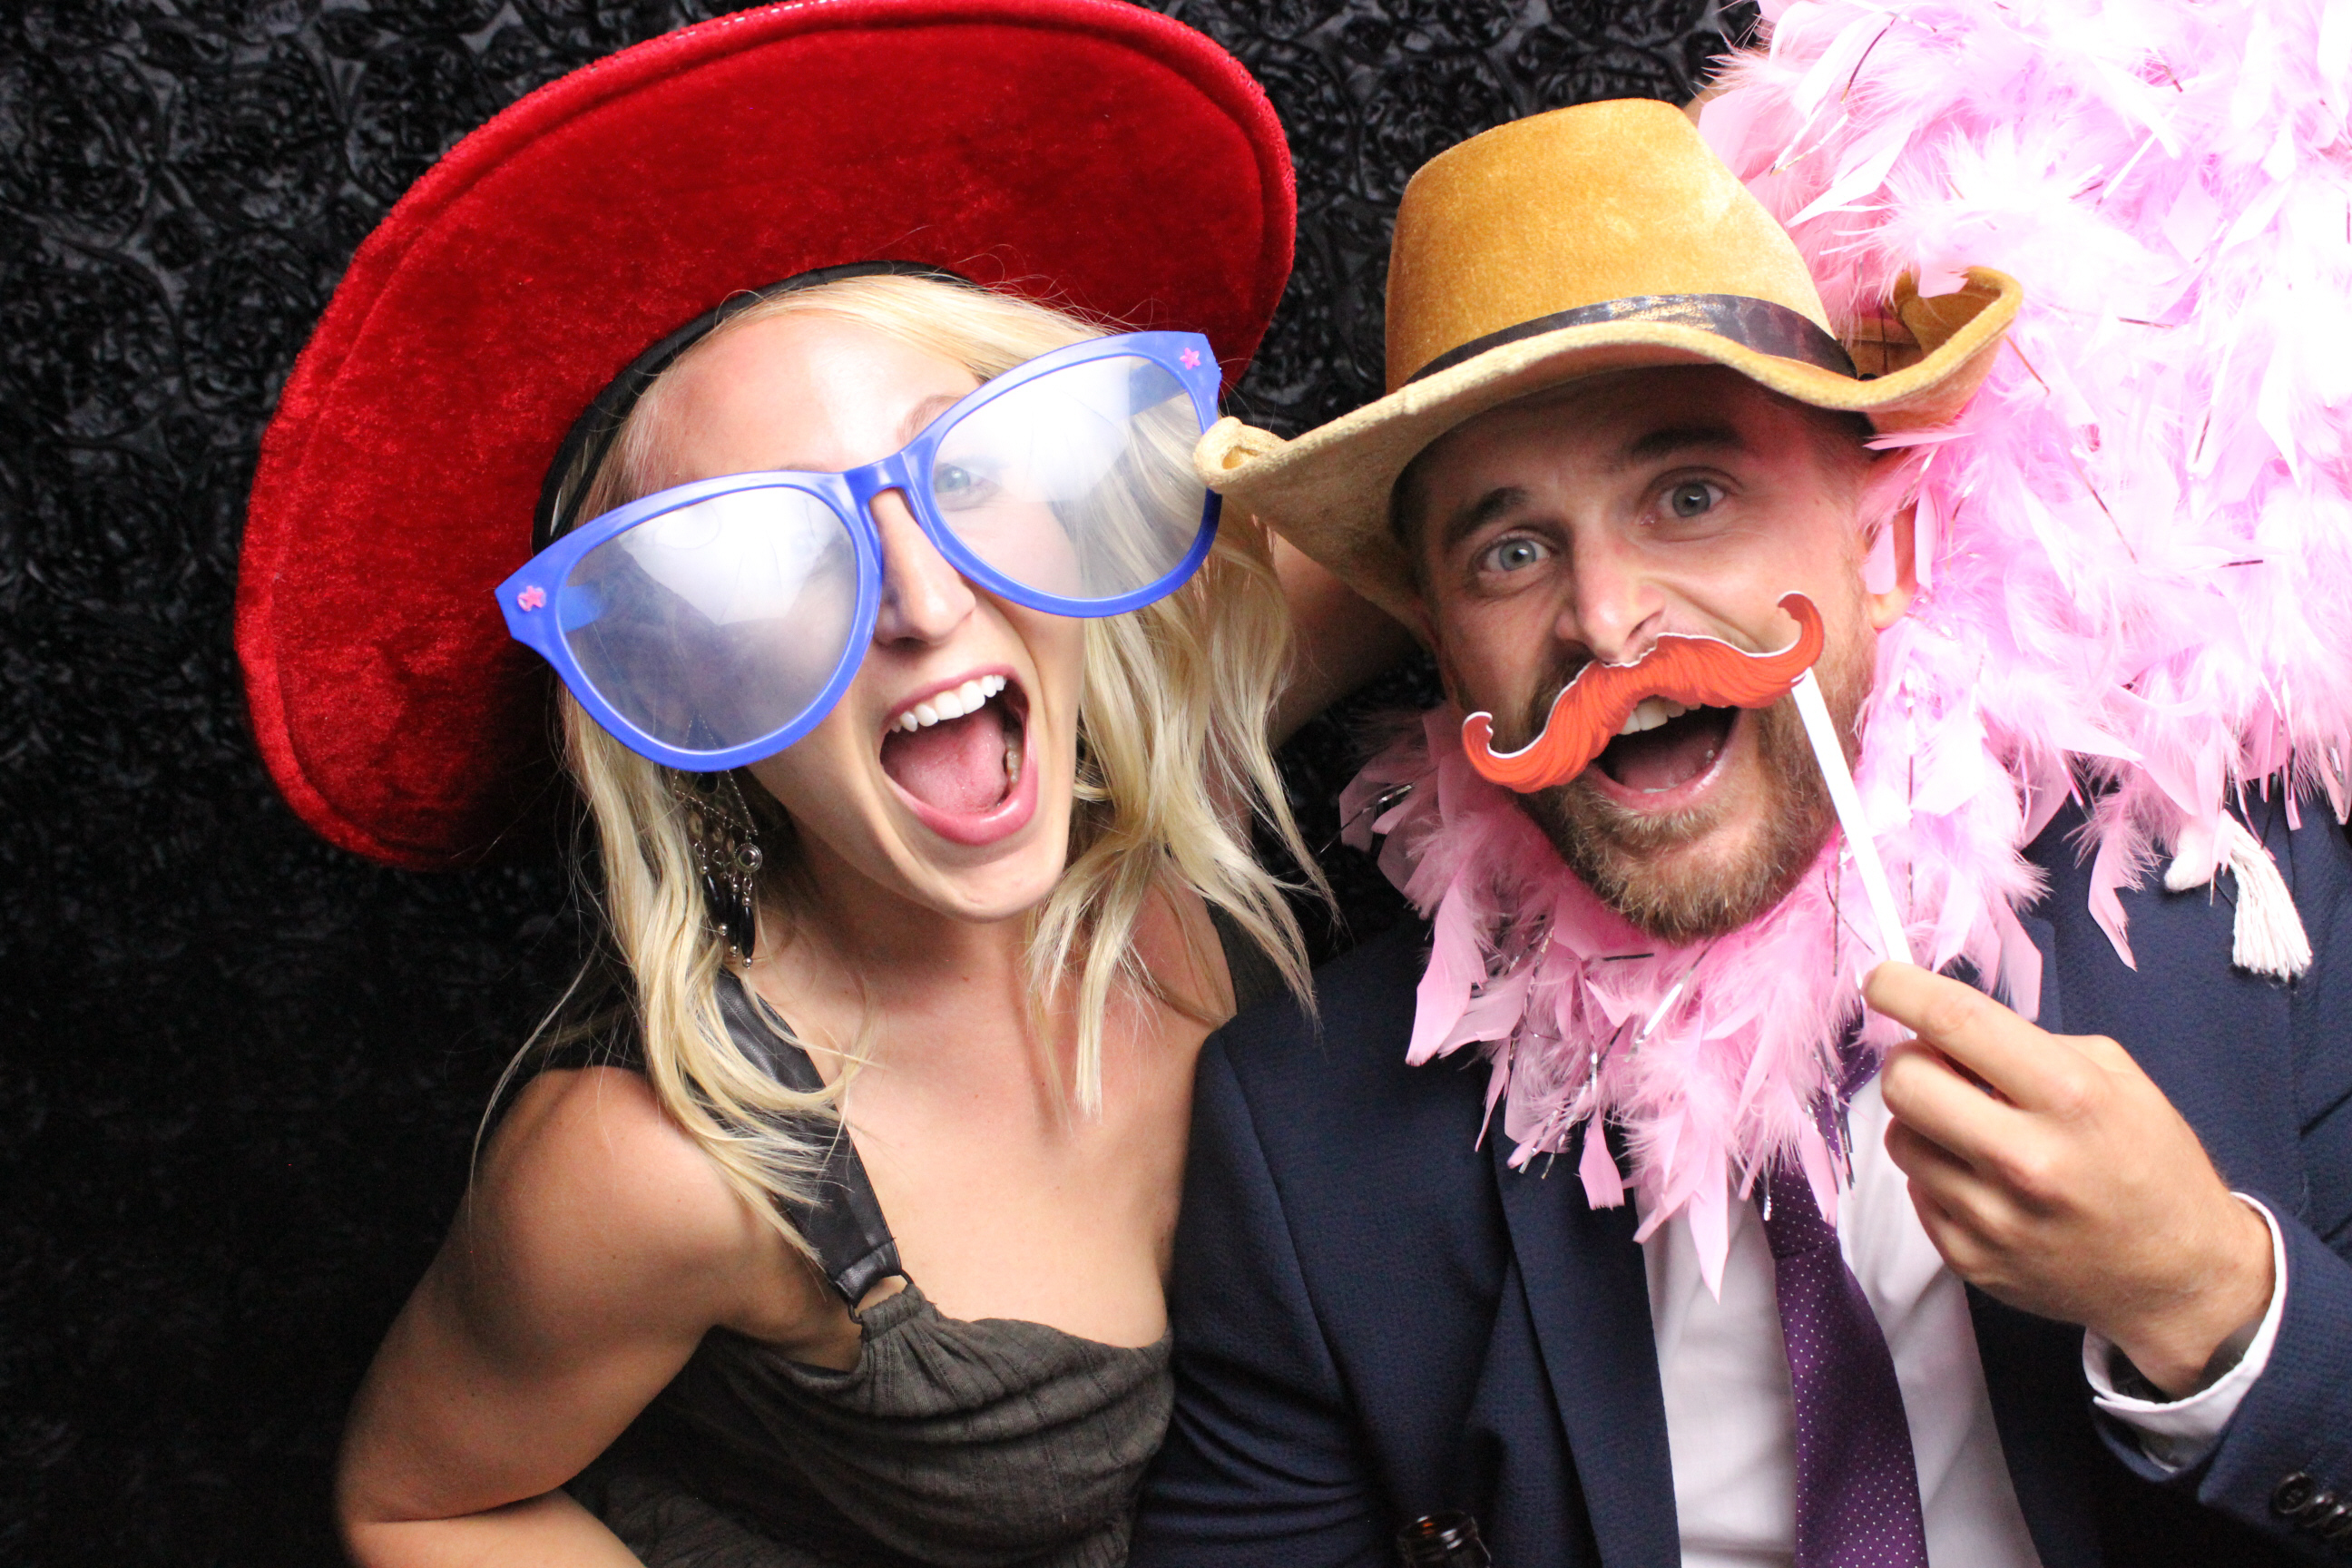 riverside photo booth rentals